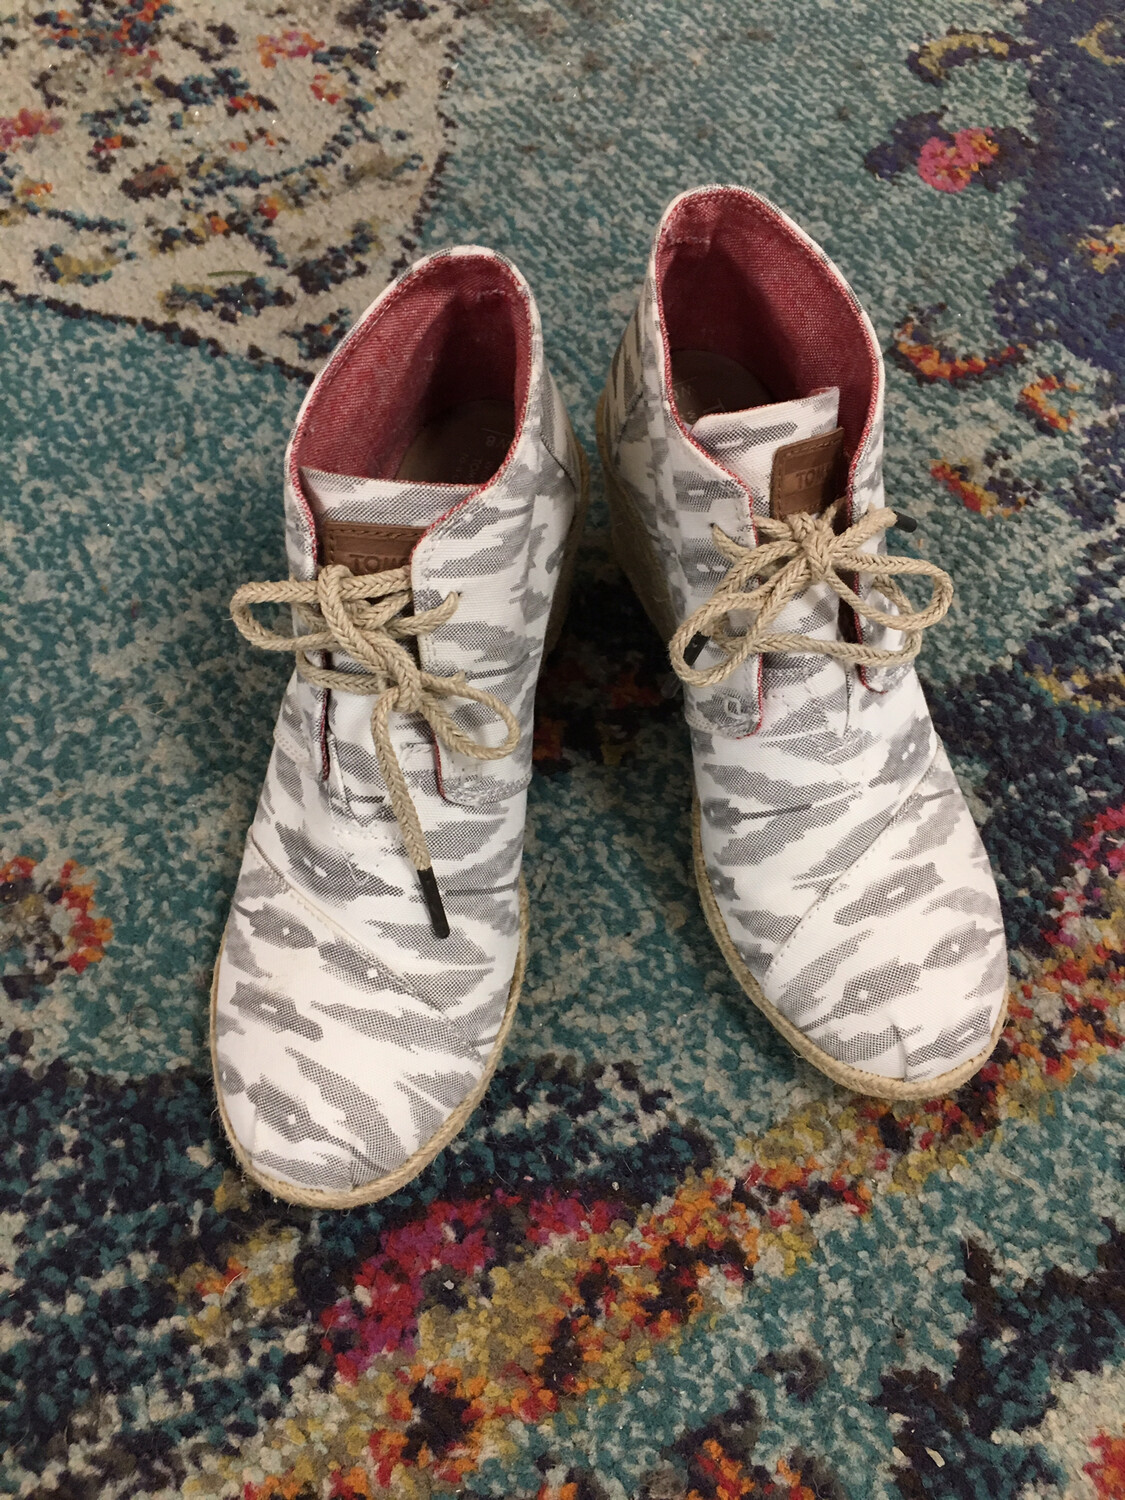 Tom's White & Gray Wedge Lace Up Shoes - Size 8W